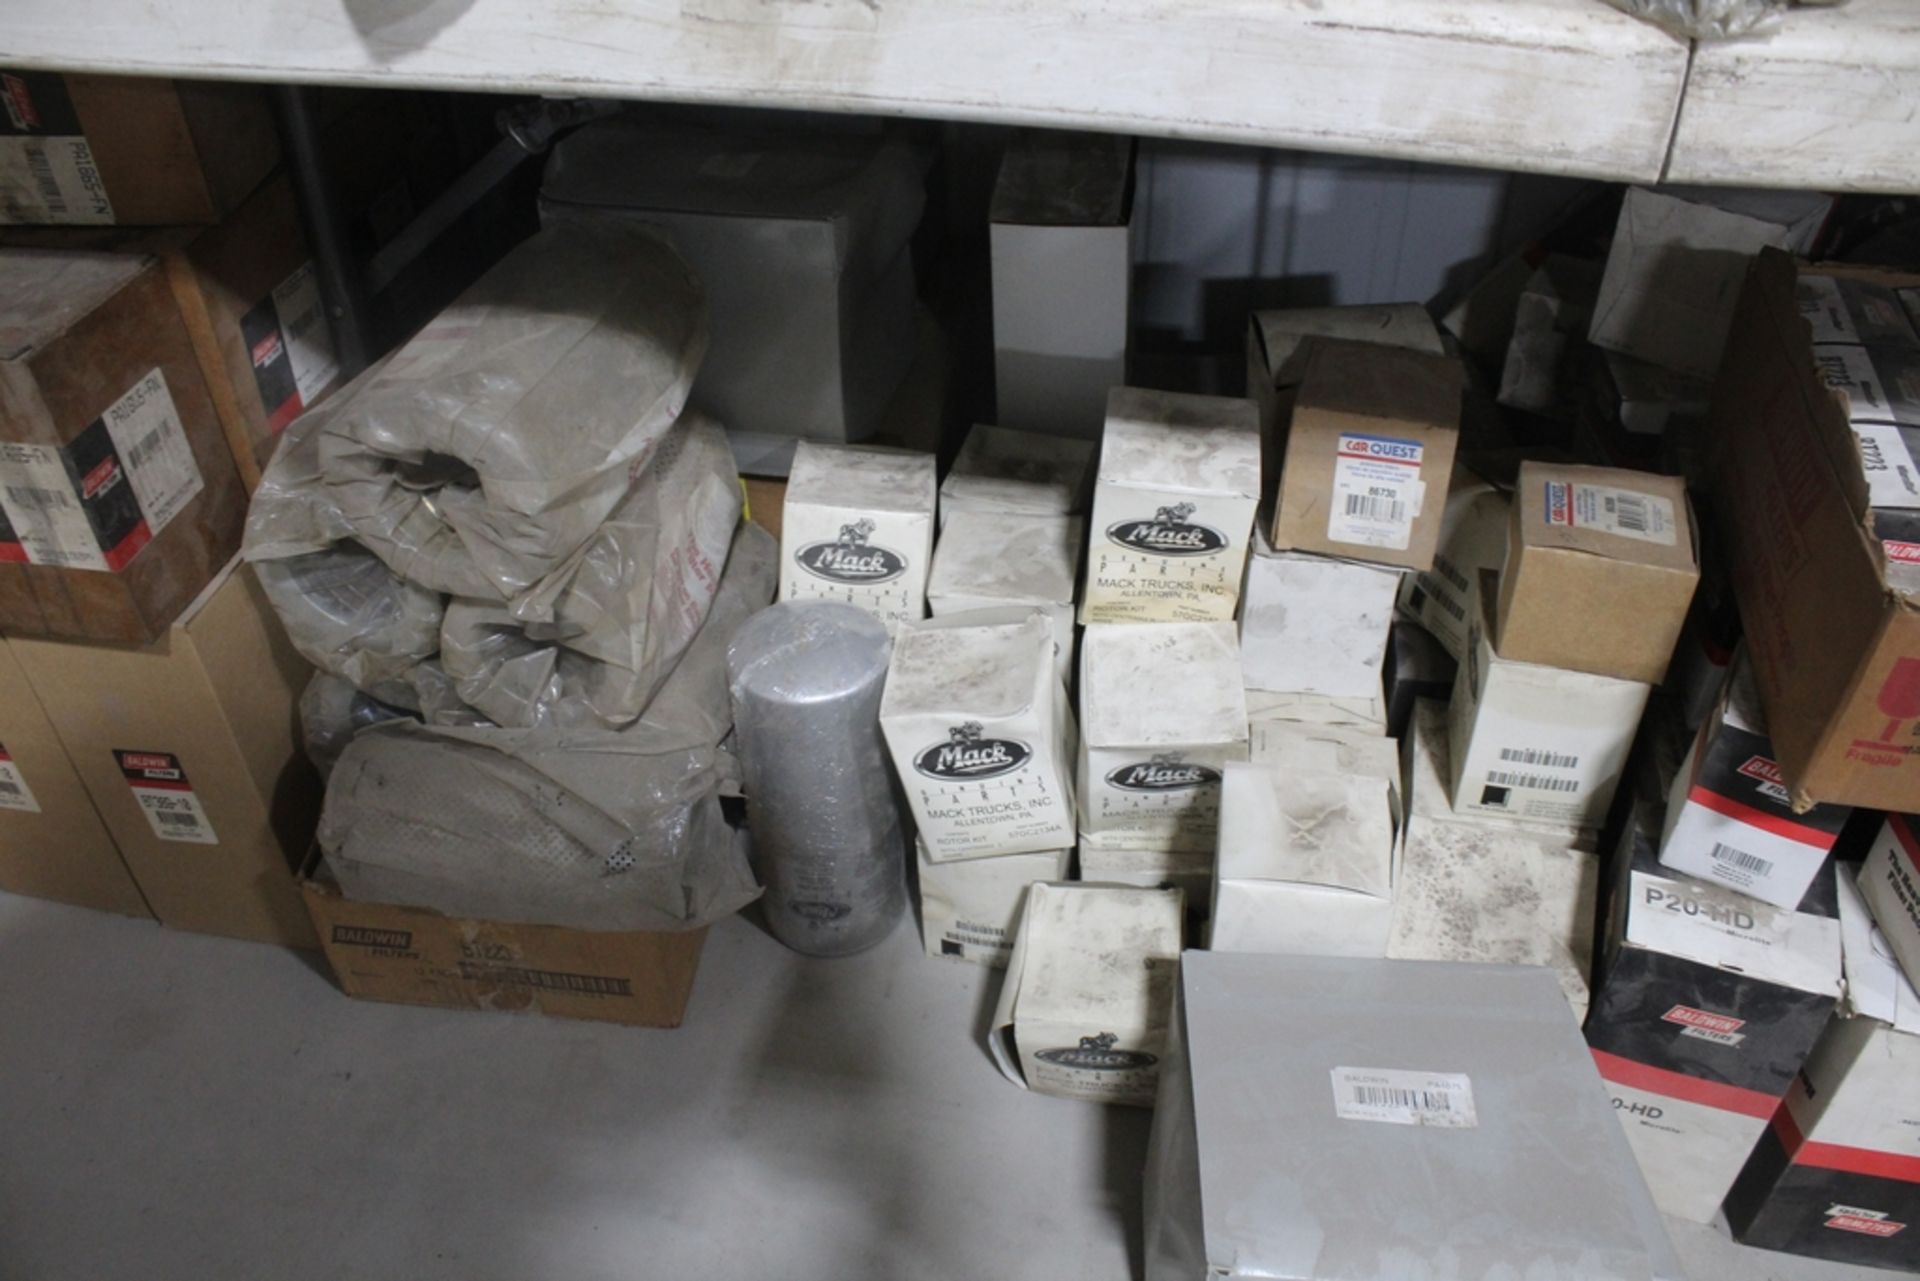 LARGE ASSORTMENT OF MACK AND BALDWIN FILTERS ON TABLE - Image 4 of 4